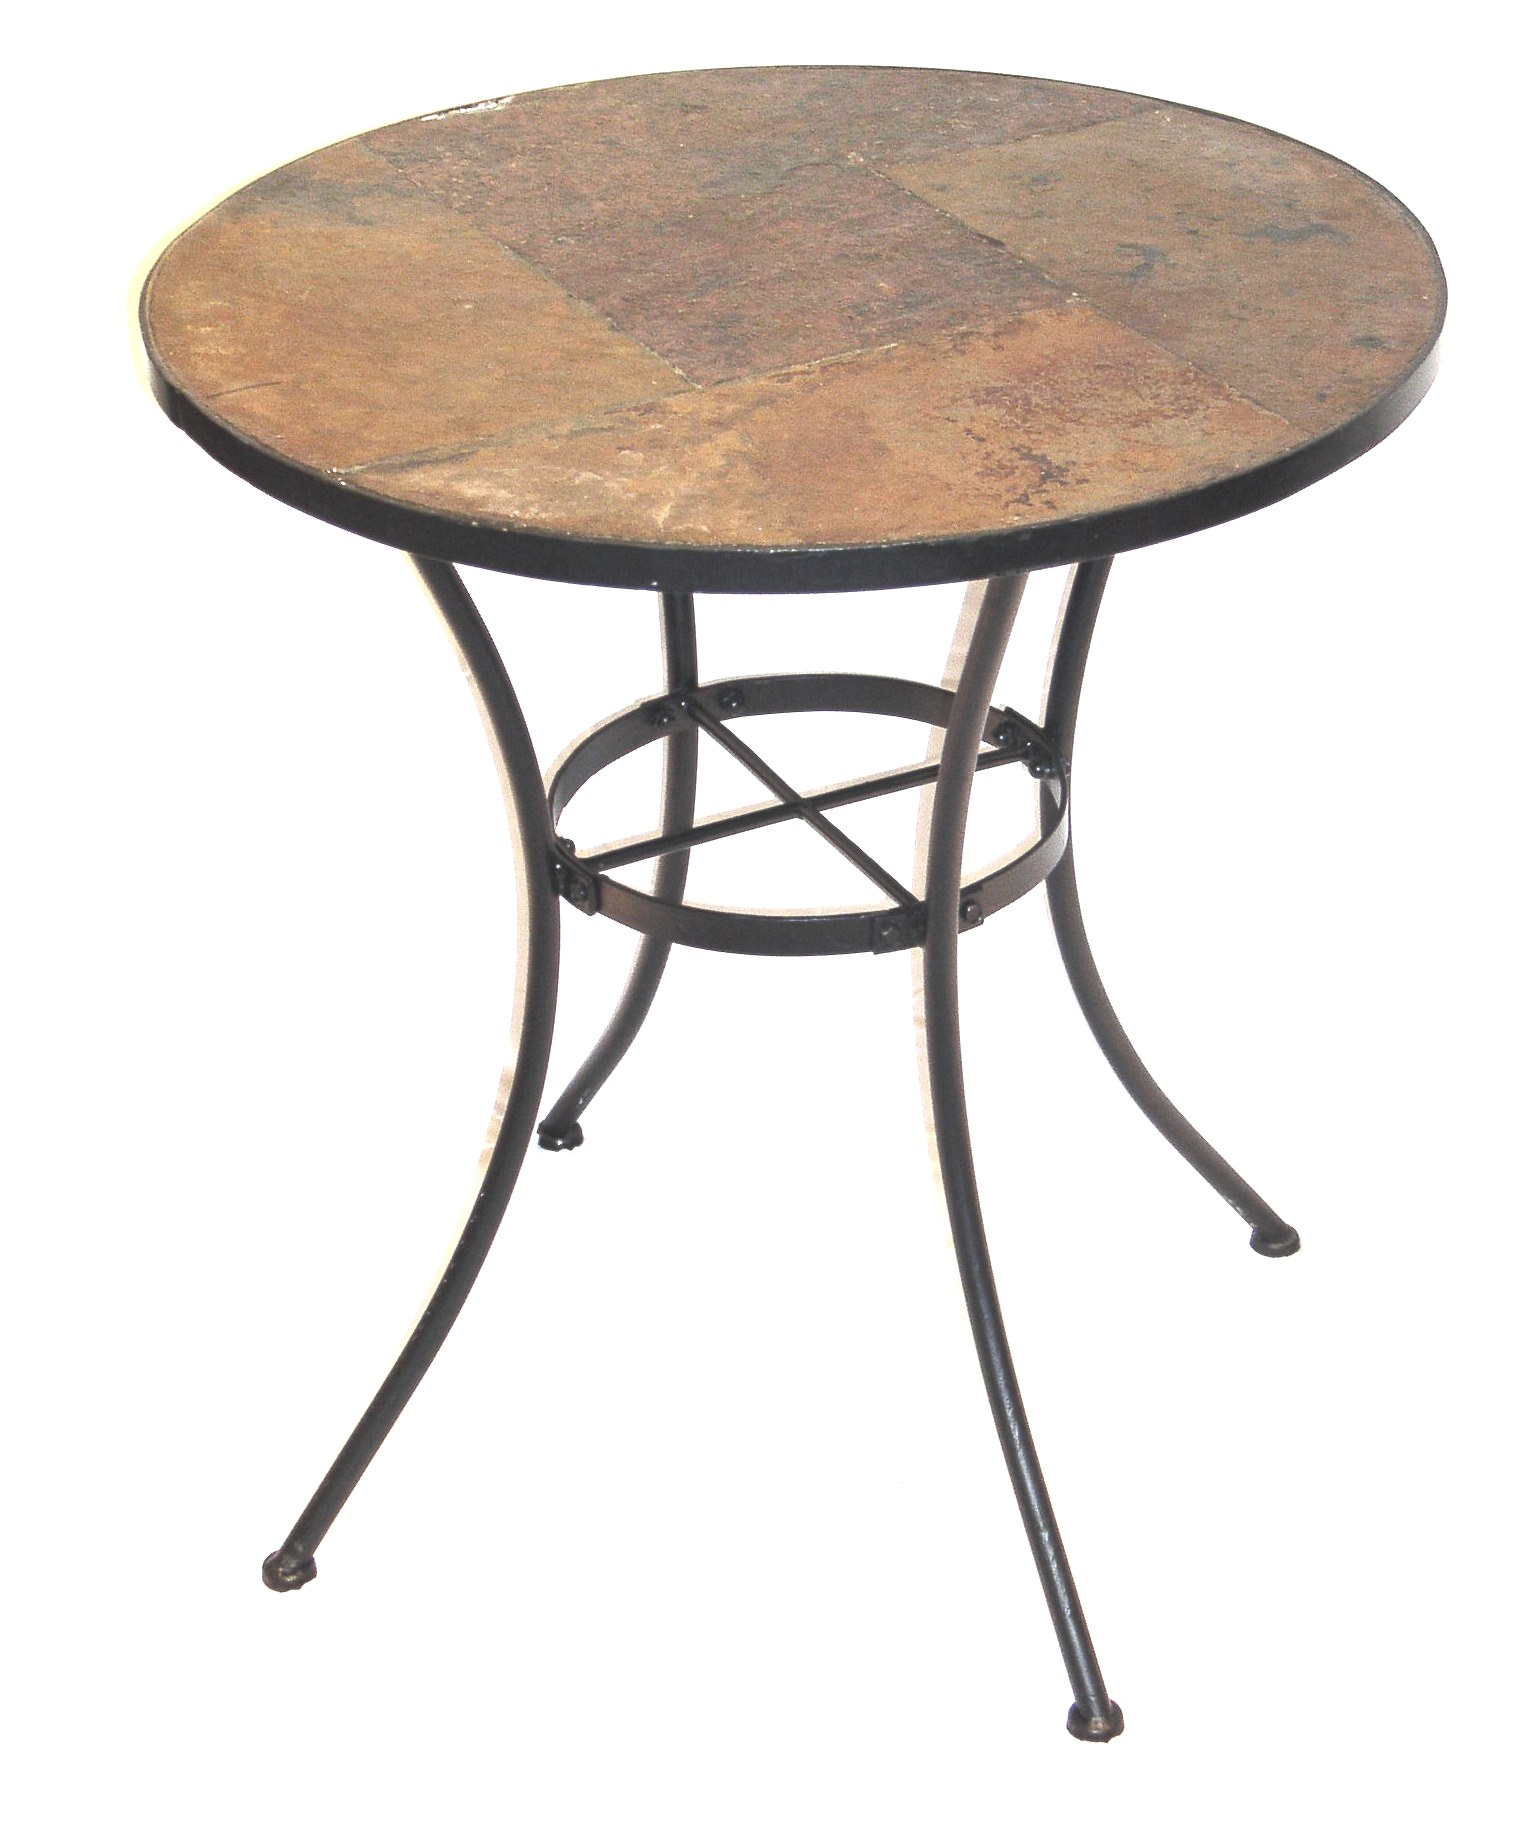 ideas enchanting bistro tables for home furniture mosaic table marble ikea accent target makeup vanity battery operated bedside lights green lounge covers yellow accents red patio